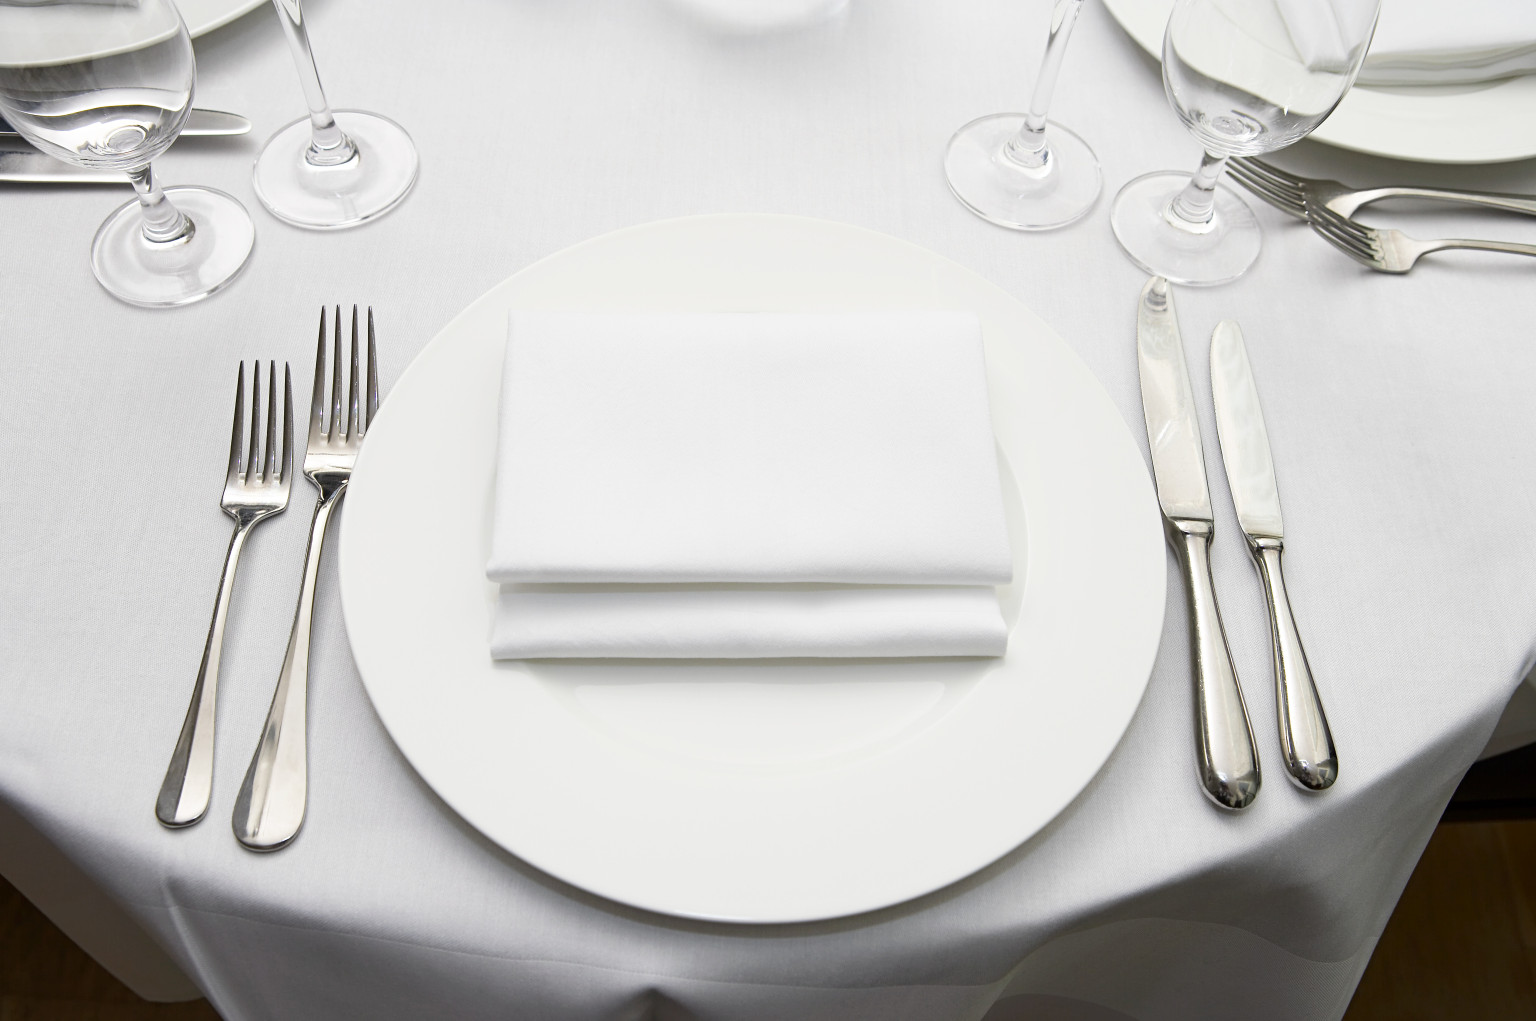 What is it like to eat alone at a fancy restaurant huffpost for Fancy dinner table